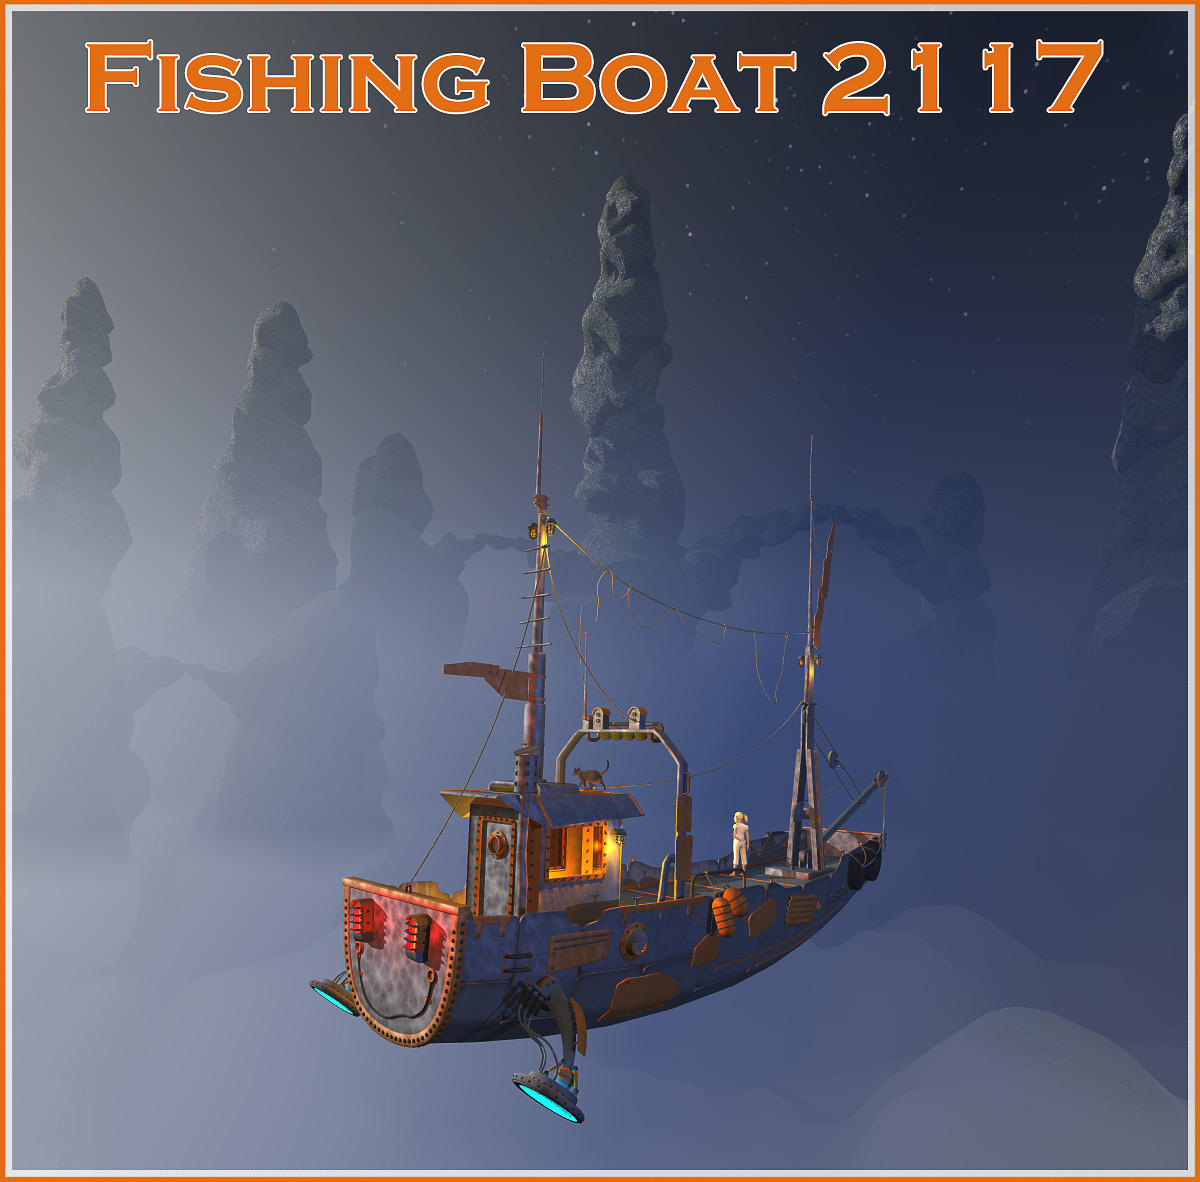 Fishing Boat 2117